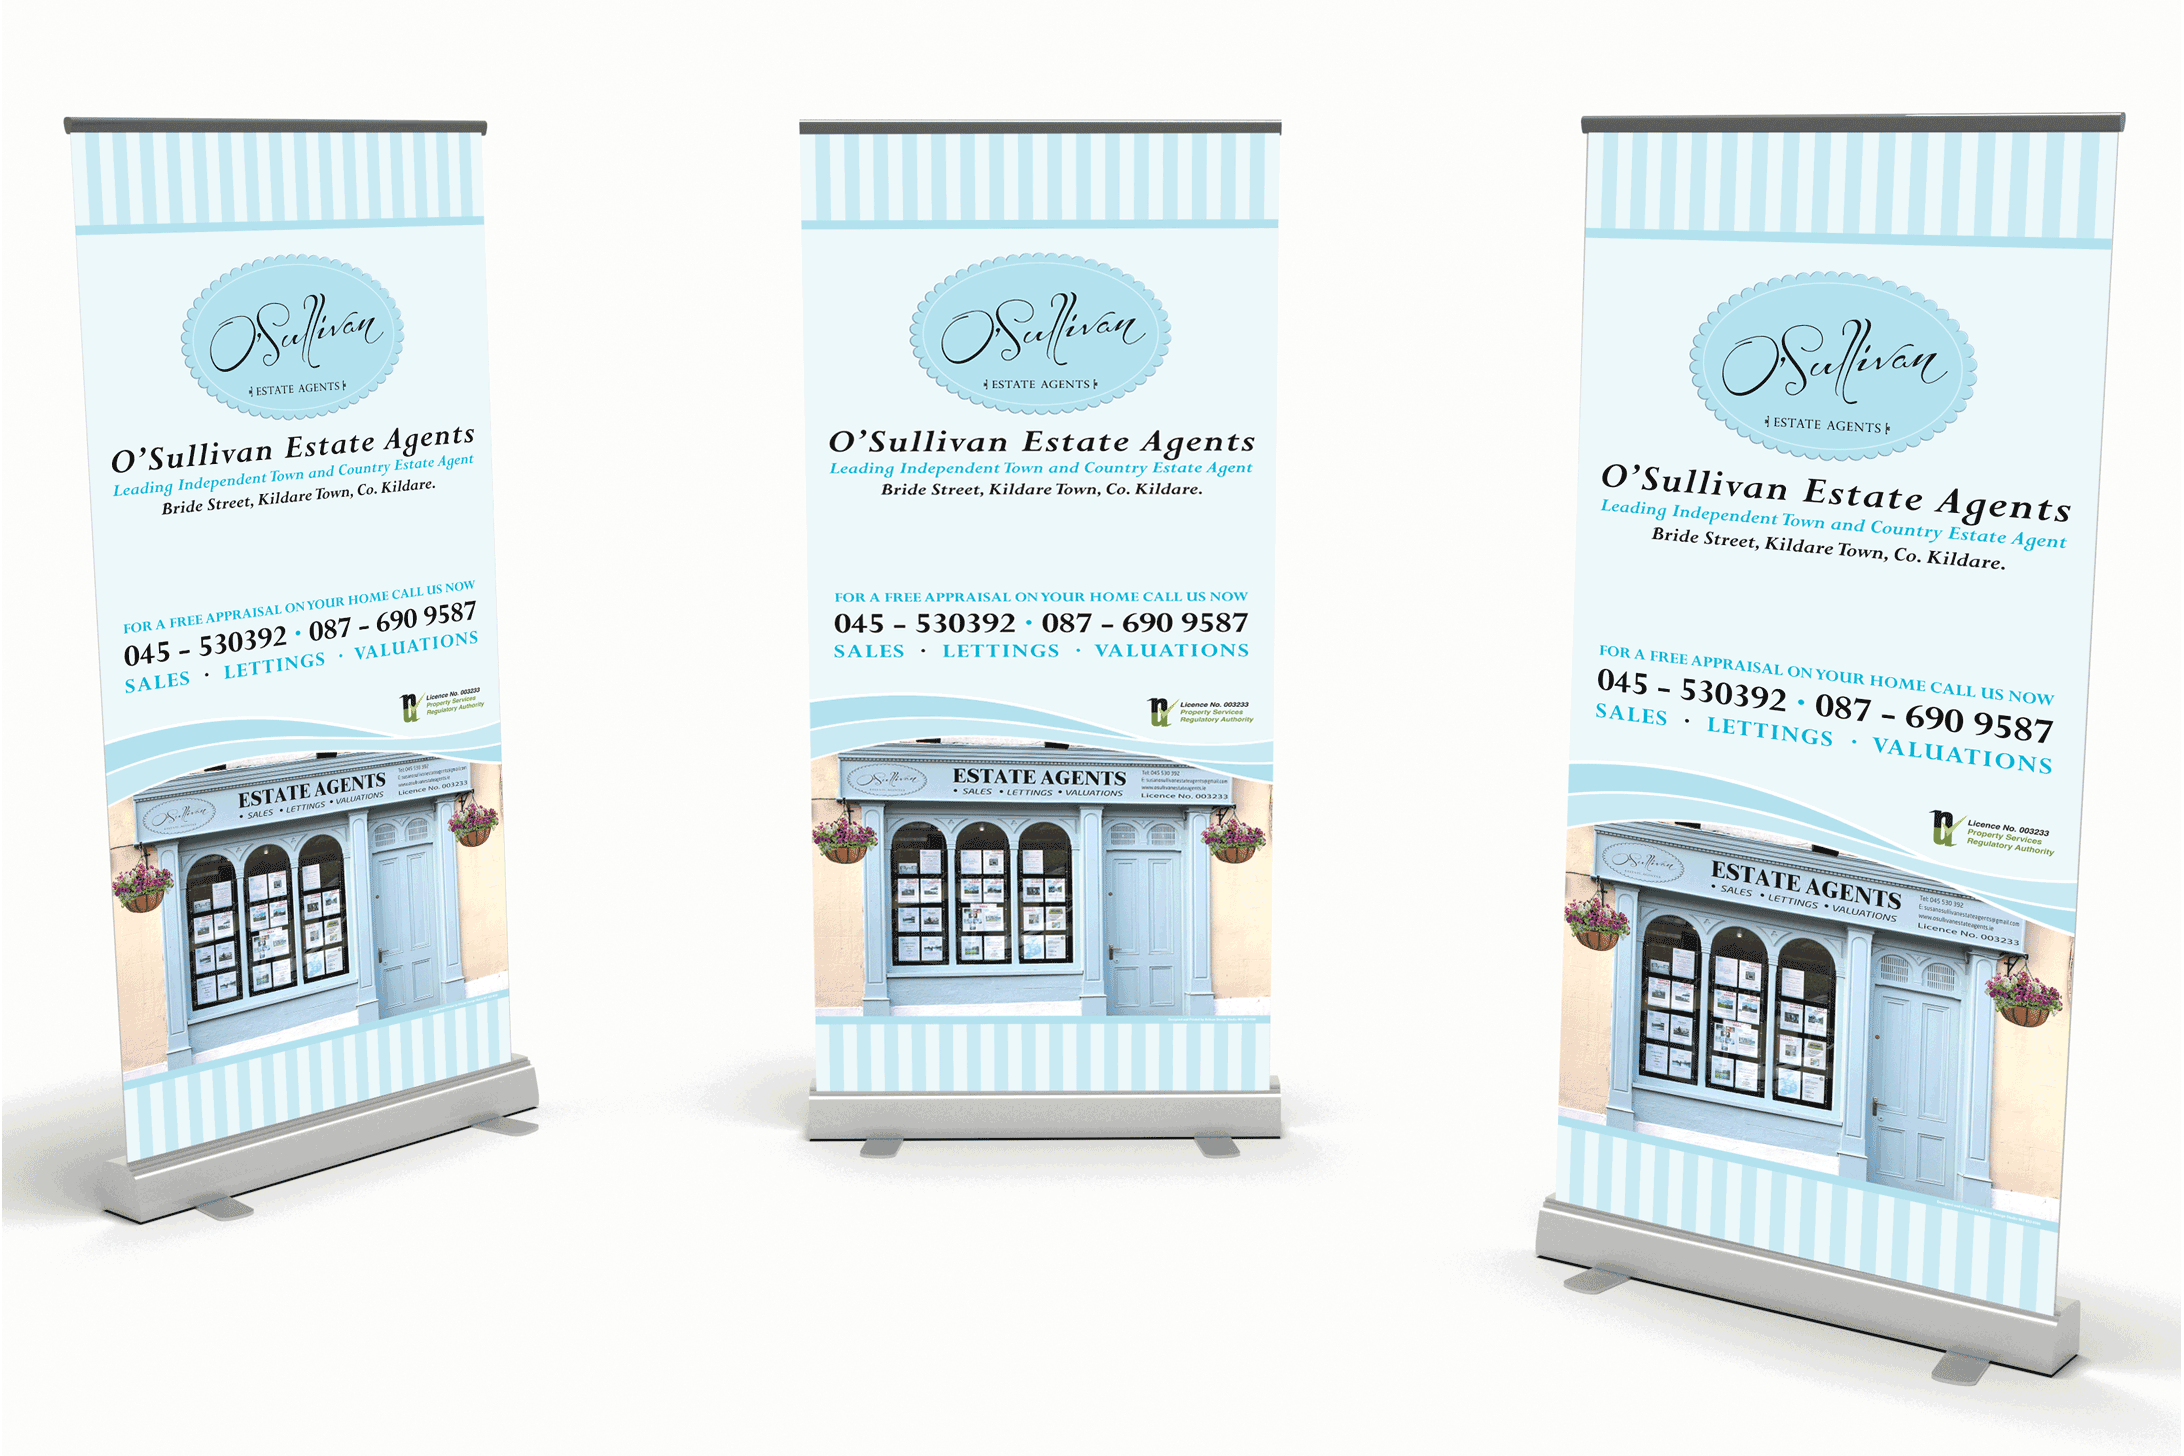 Artisan Design Studio's Pull-up Banners